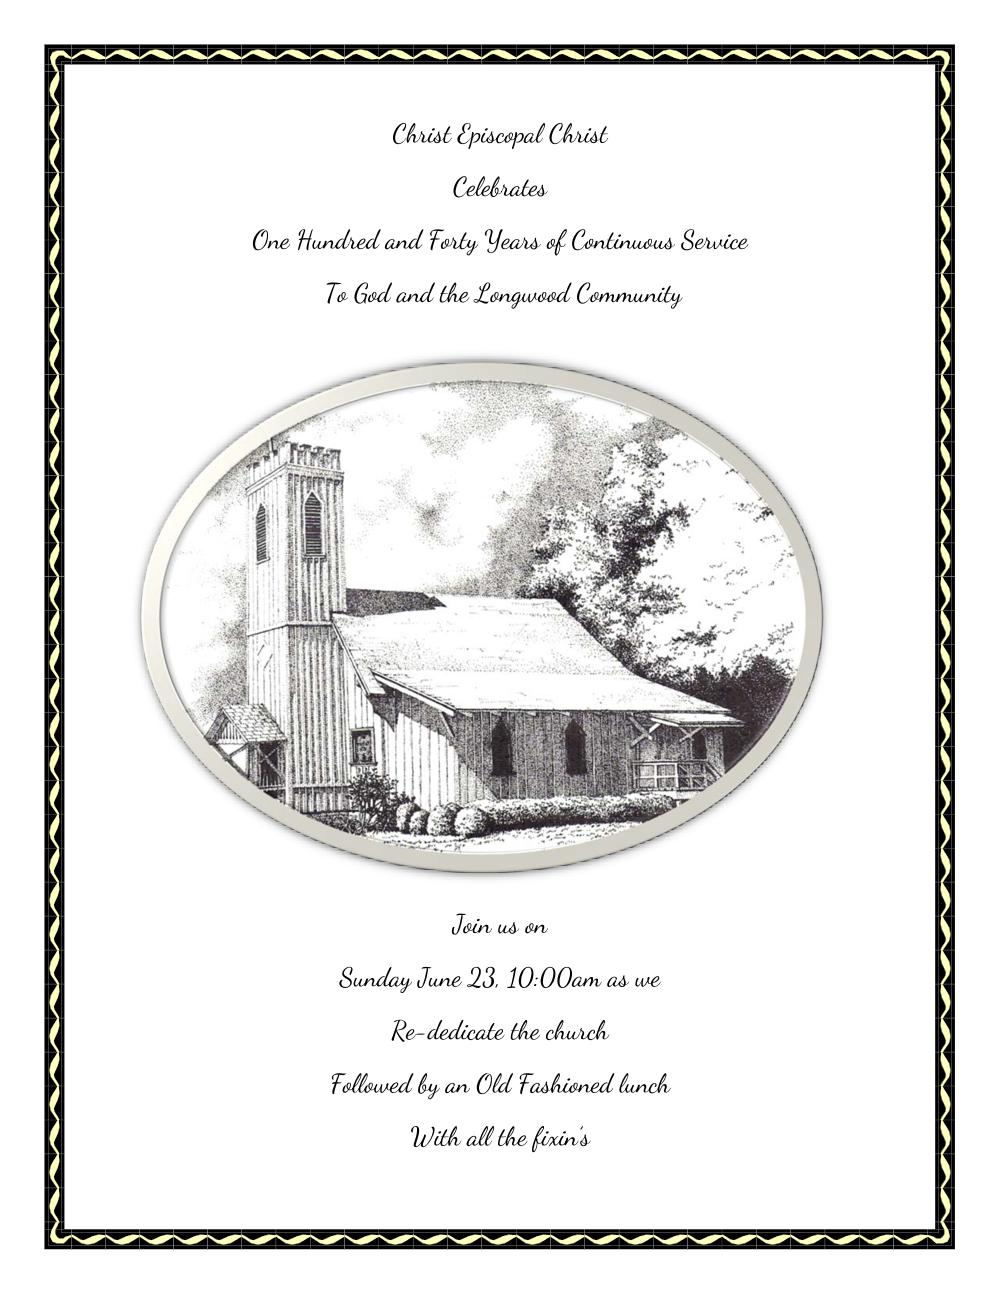 Christ Episcopal Christ 140th Anniversary Flyer.jpg